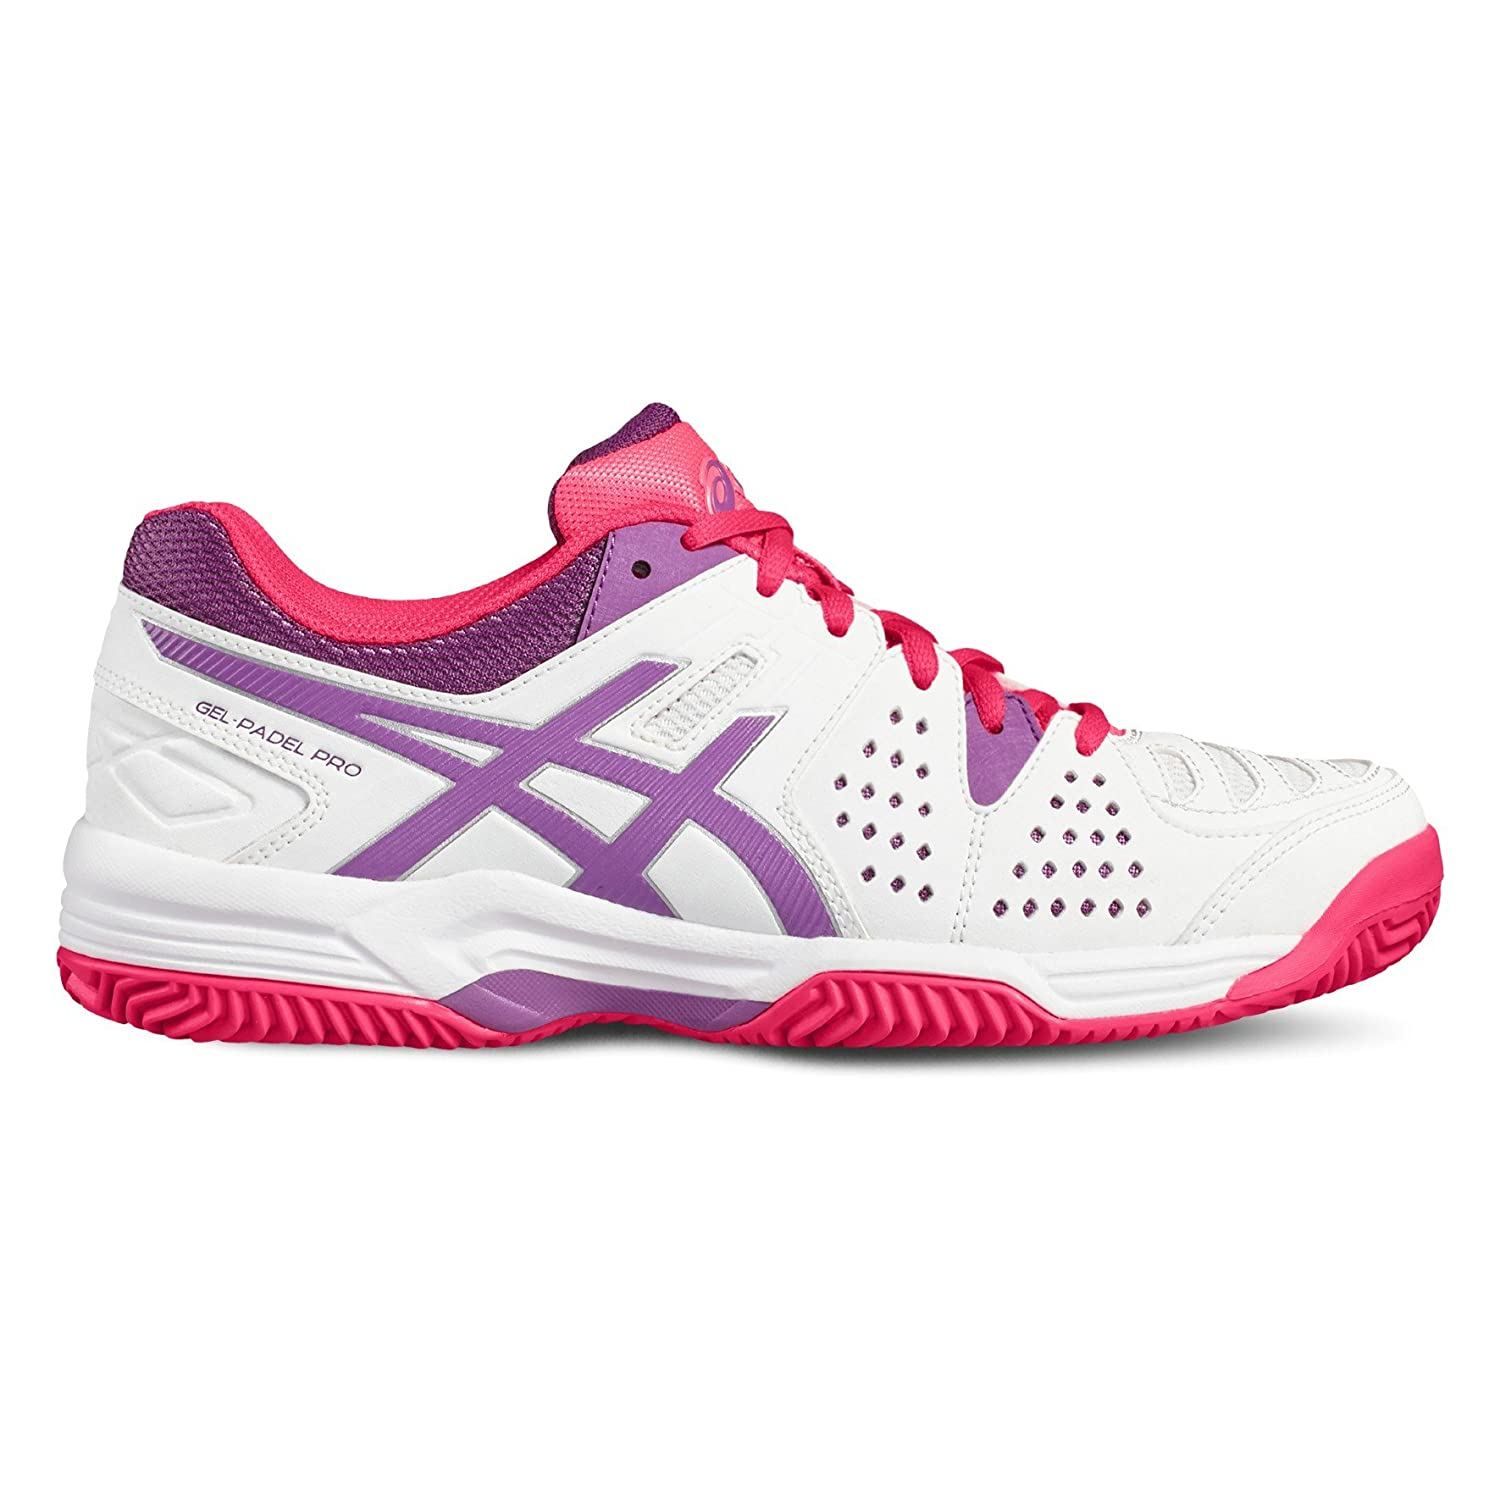 ASICS Gel Padel Pro 3 SG Blanco Purpura E561Y 0136: Amazon.es ...